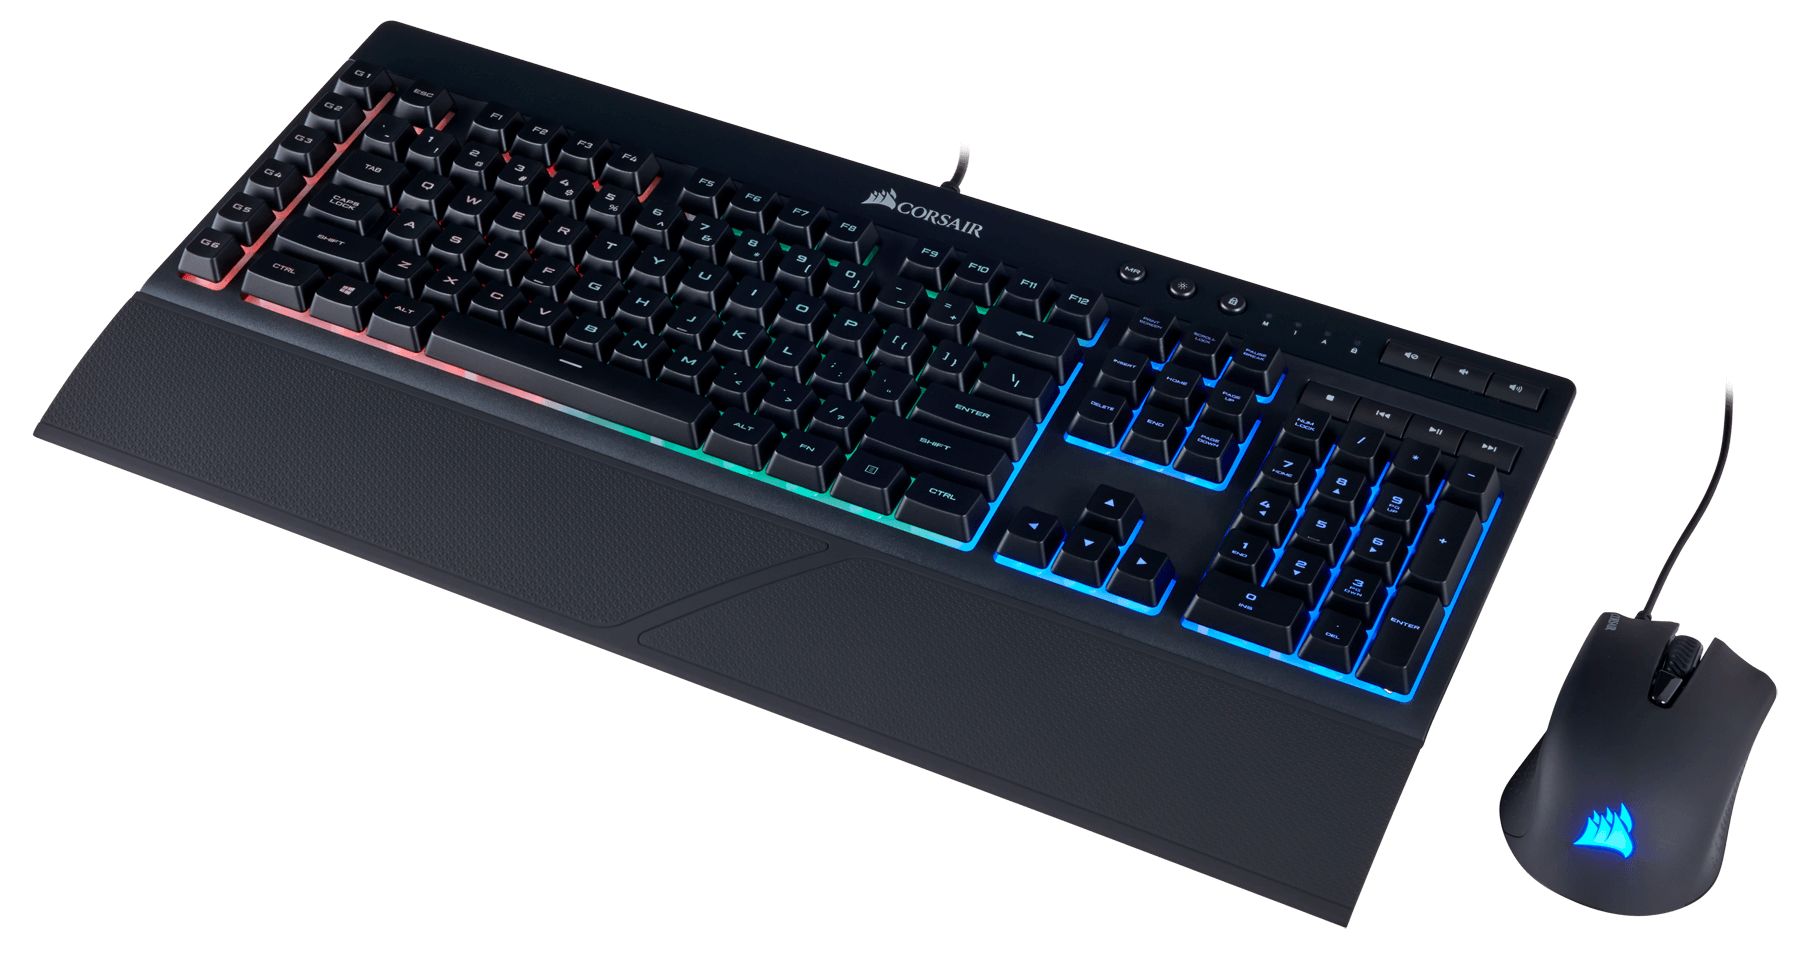 K55 + HARPOON RGB Keyboard and Mouse Combo